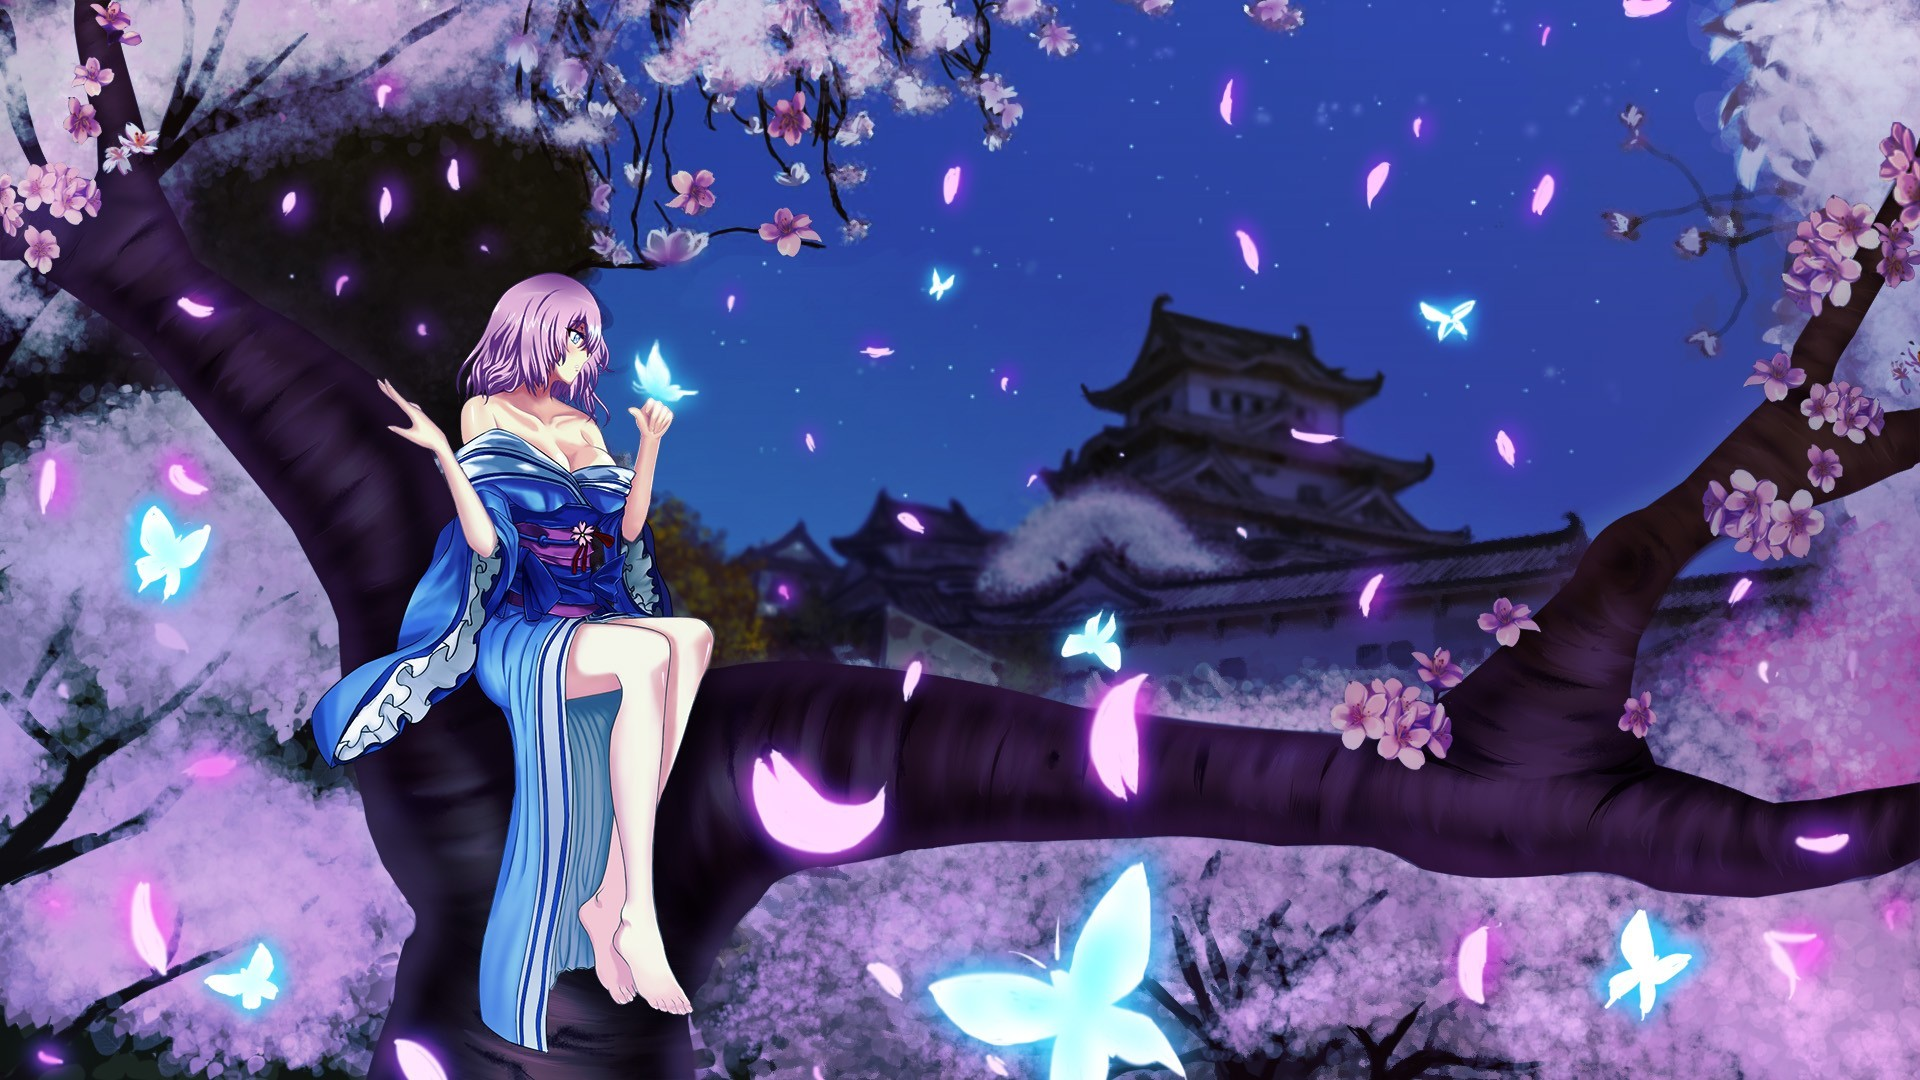 The Cherry Blossom Girl | Download Girl Sitting In Cherry Blossom Tree  Wallpaper 41322 Wallpaper